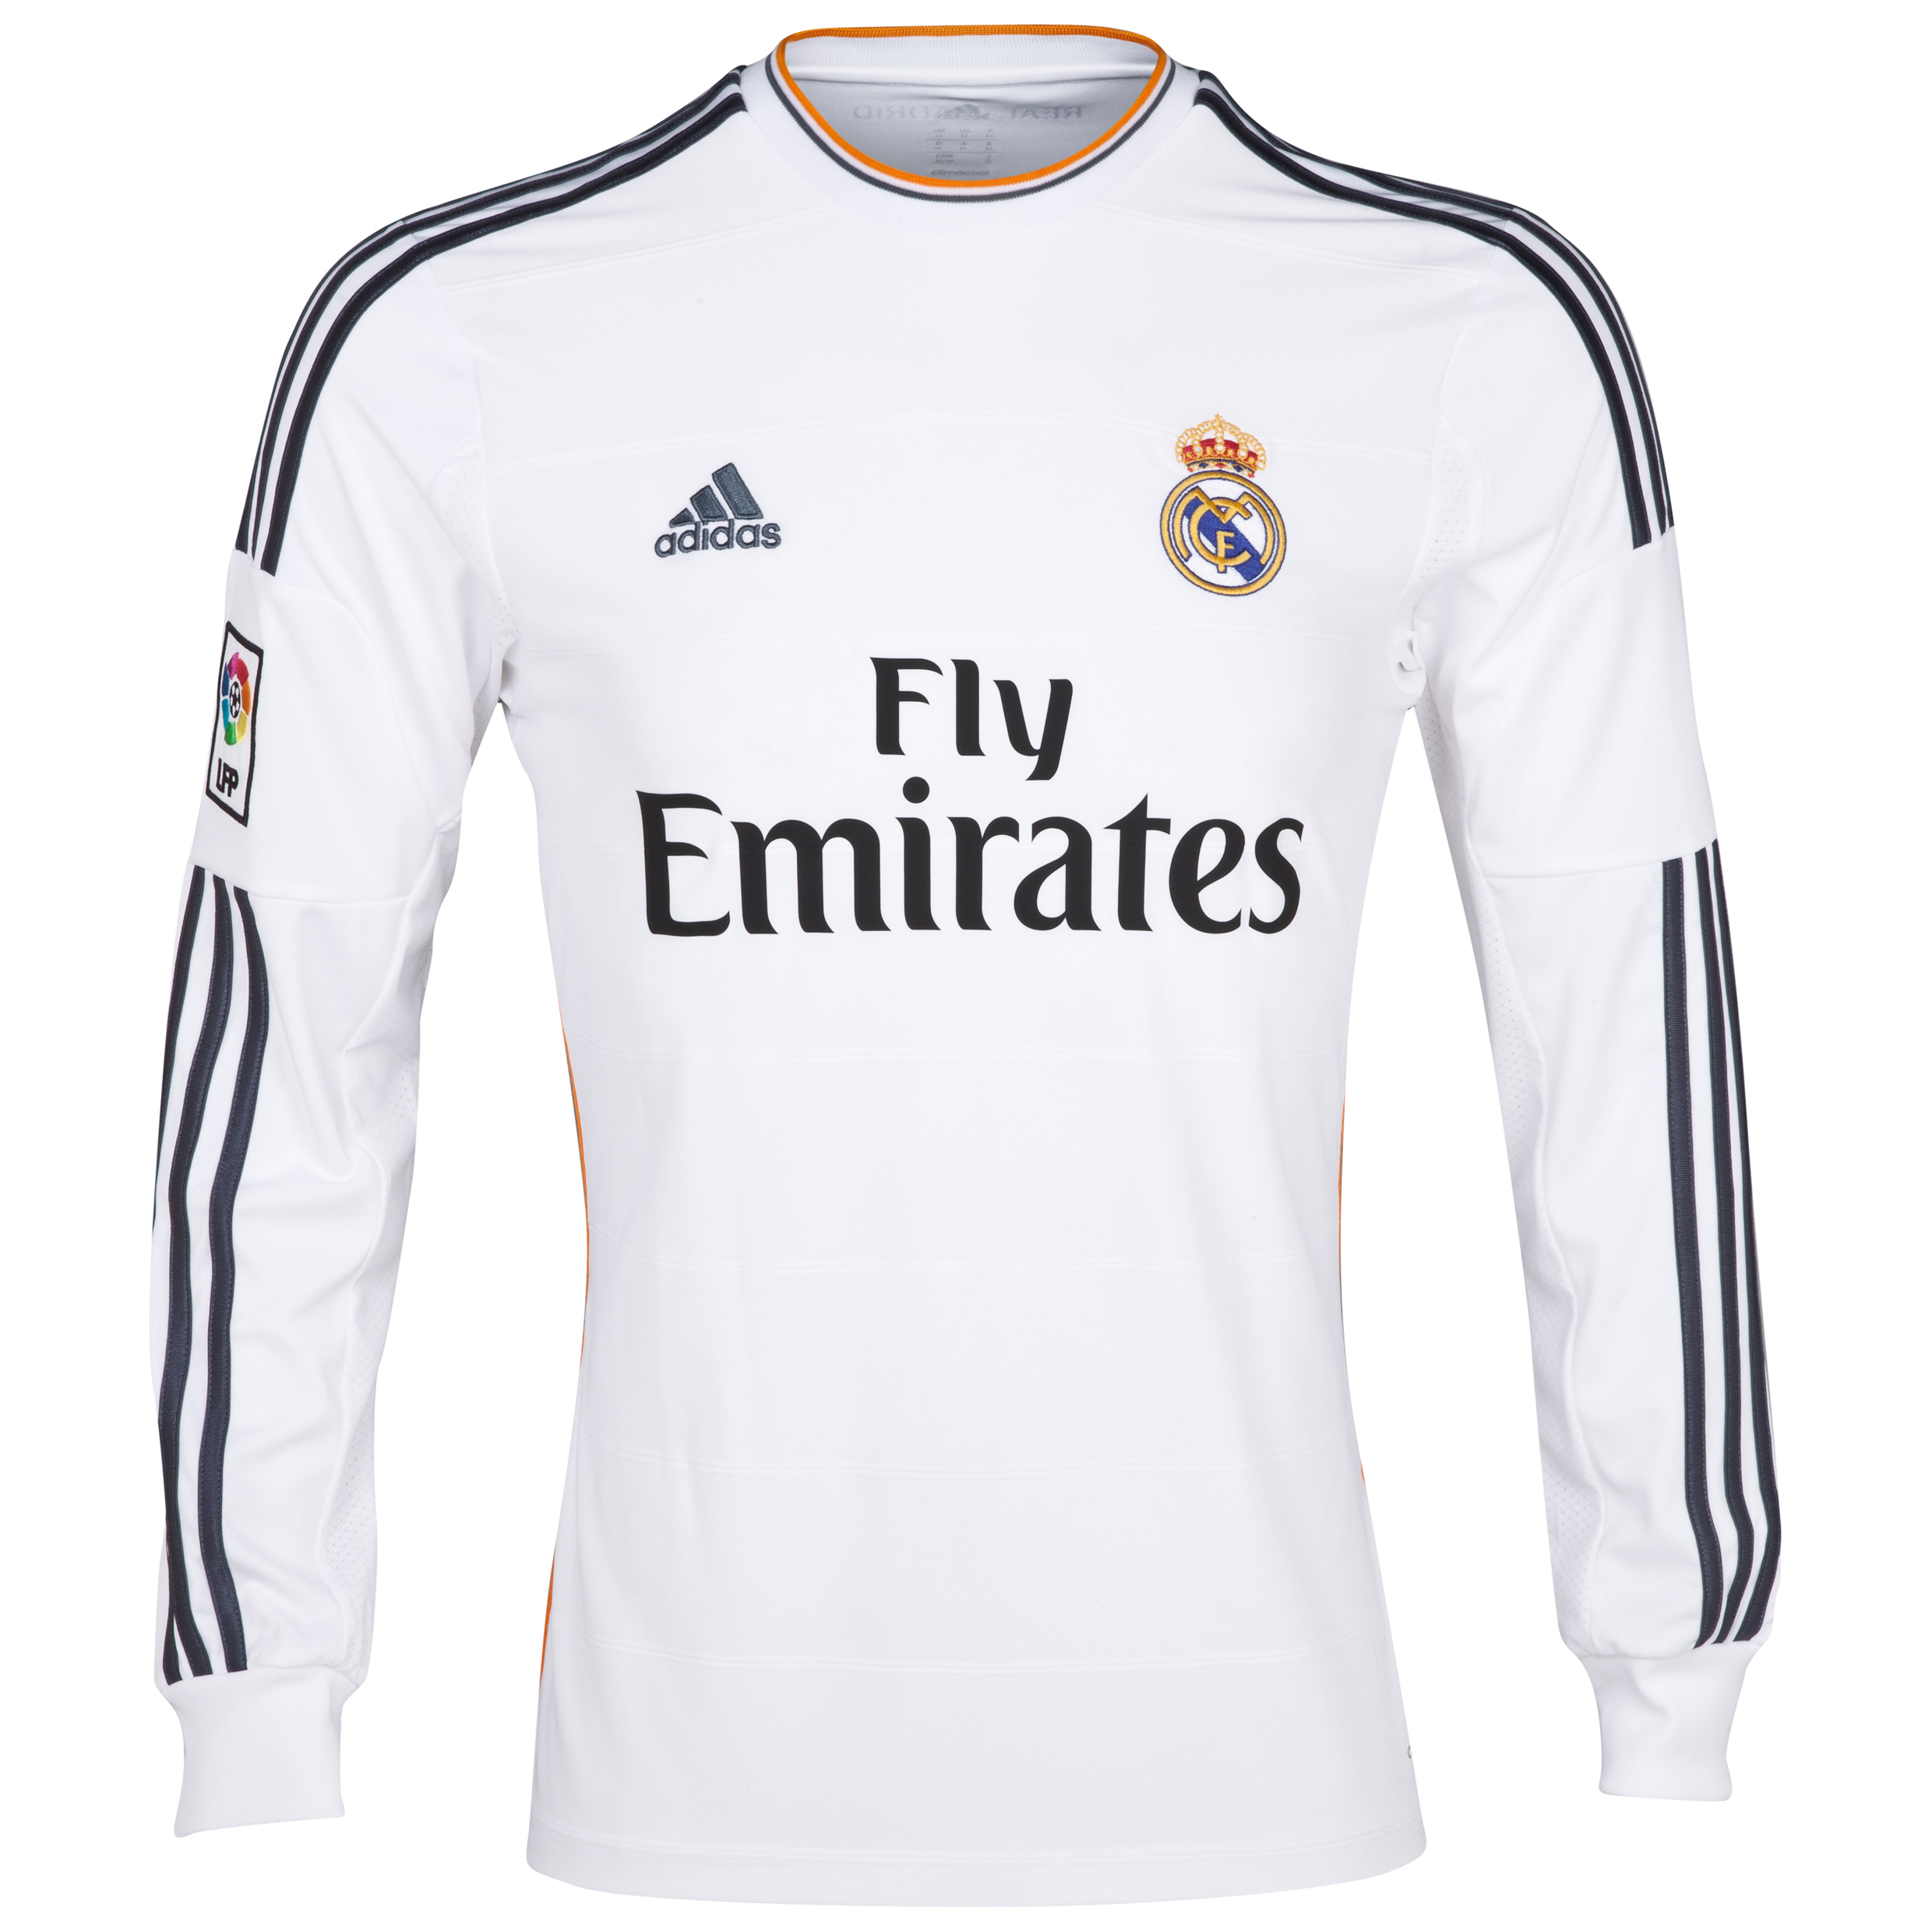 Real Madrid Home Shirt 2013/14 - Long Sleeve